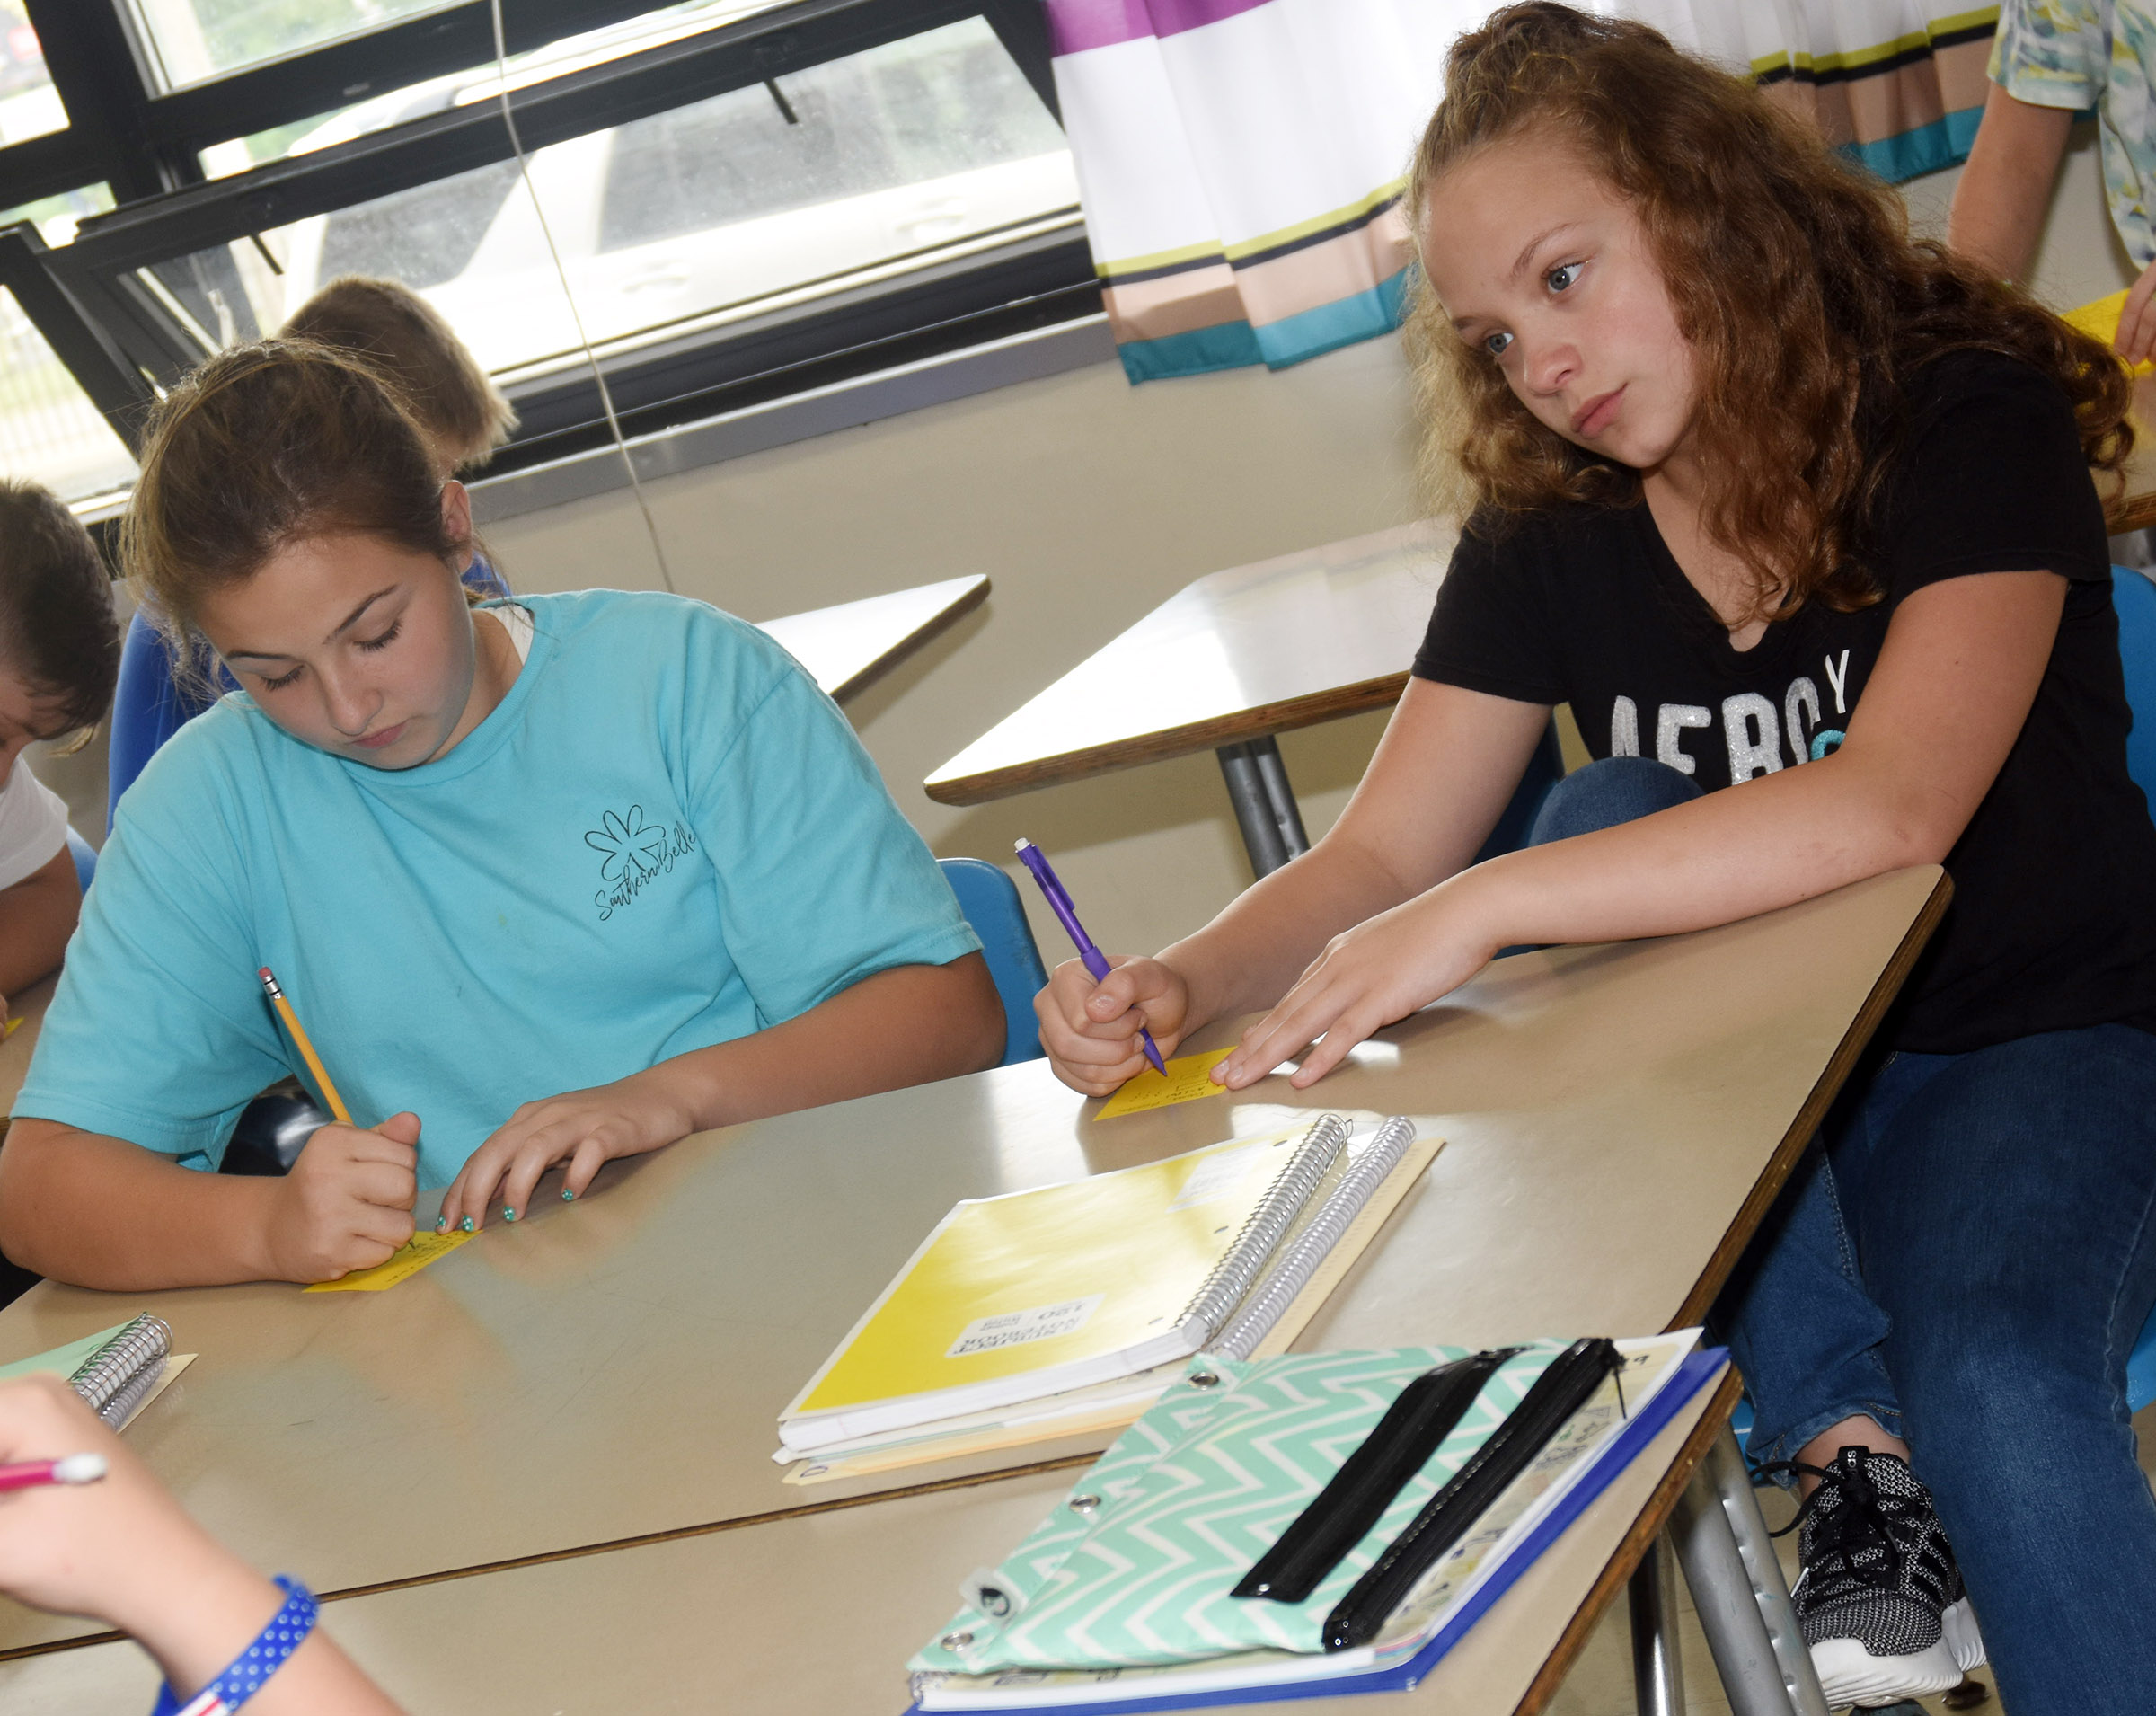 Campbellsville Middle School sixth-graders Riley Newton, at left, and Deanna Reardon answer questions in their math class.